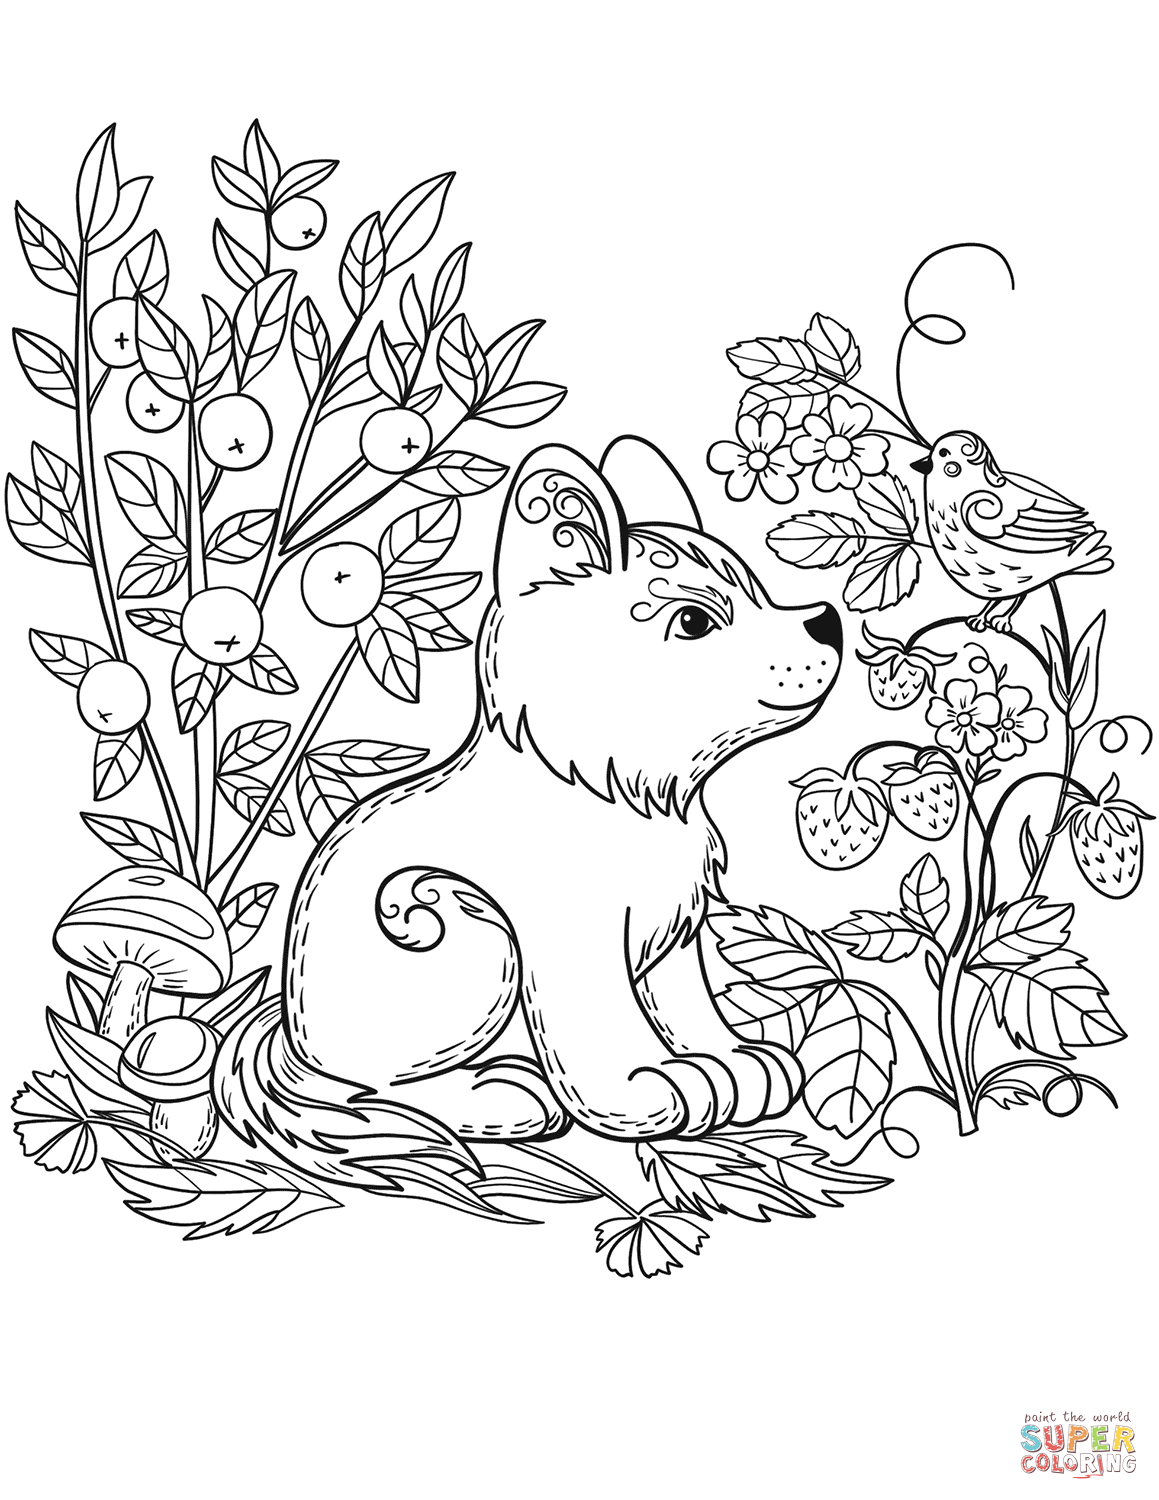 coloring forest forest coloring page stock illustration illustration of coloring forest